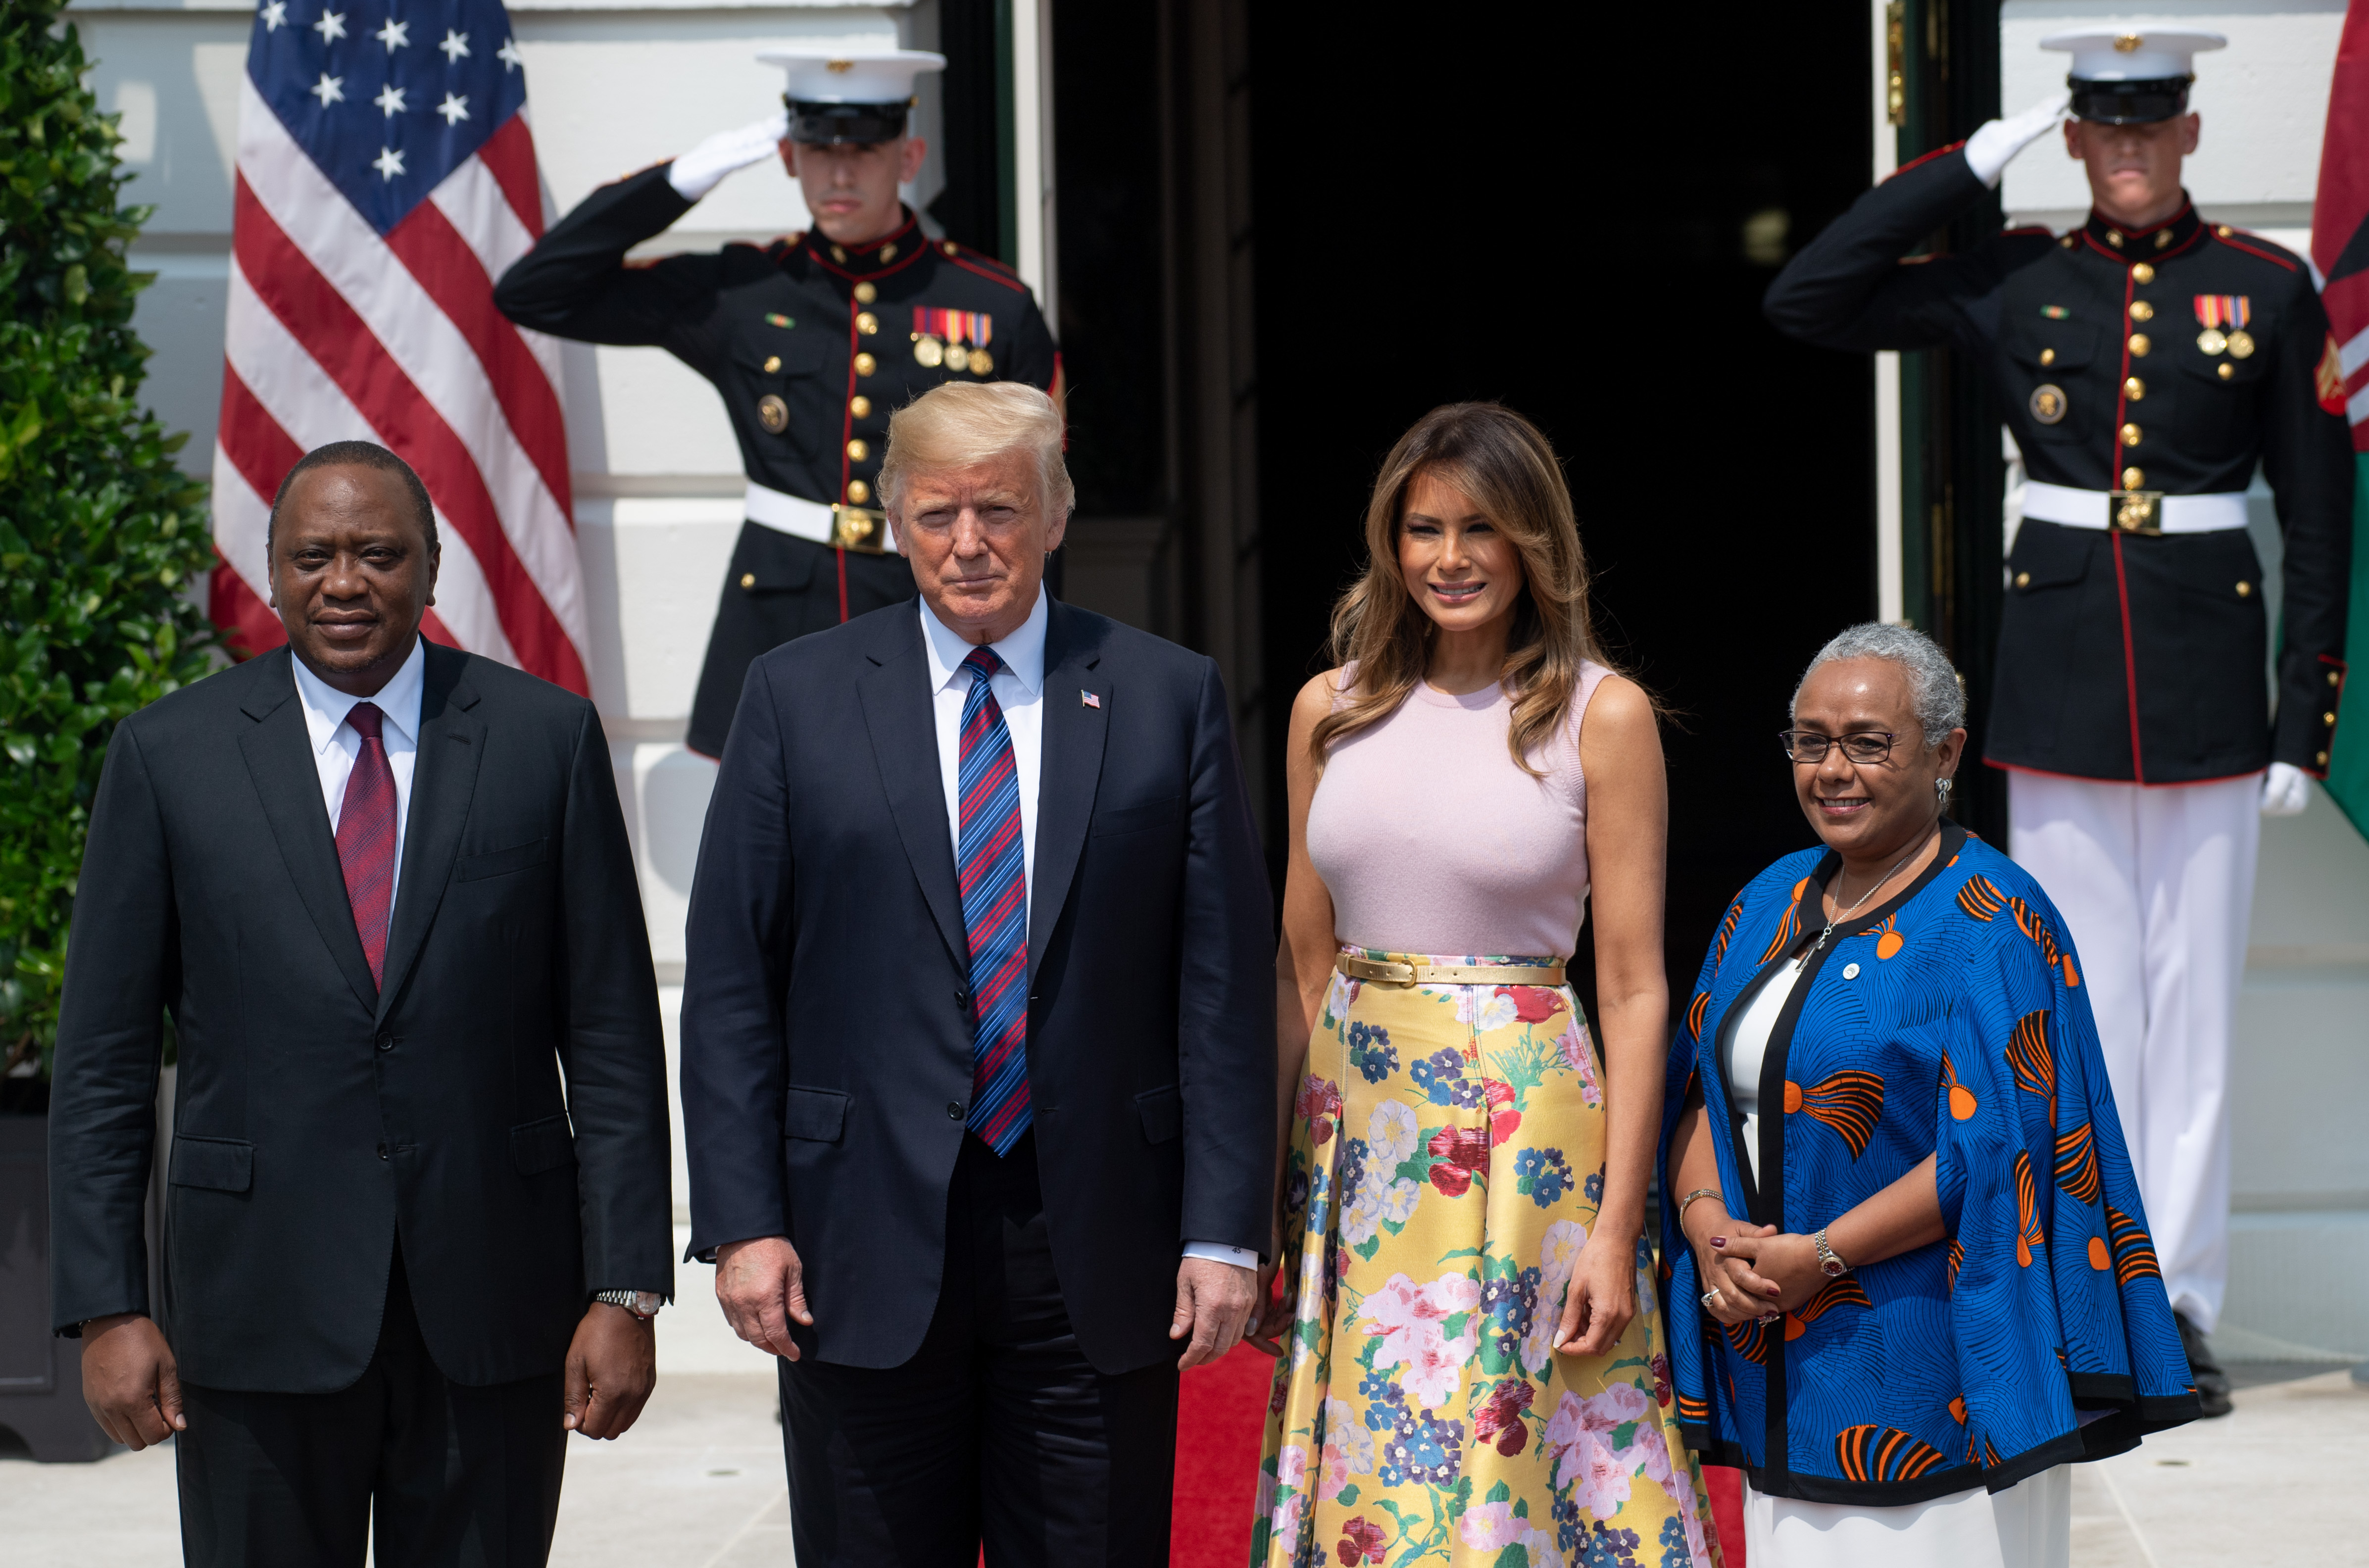 President Donald Trump and First Lady Melania Trump welcome Kenyan President Uhuru Kenyatta (L) and his wife, Margaret Kenyatta (R), as they arrive at the South Lawn of the White House in Washington, DC, August 27, 2018. (Photo: SAUL LOEB/AFP/Getty Images)